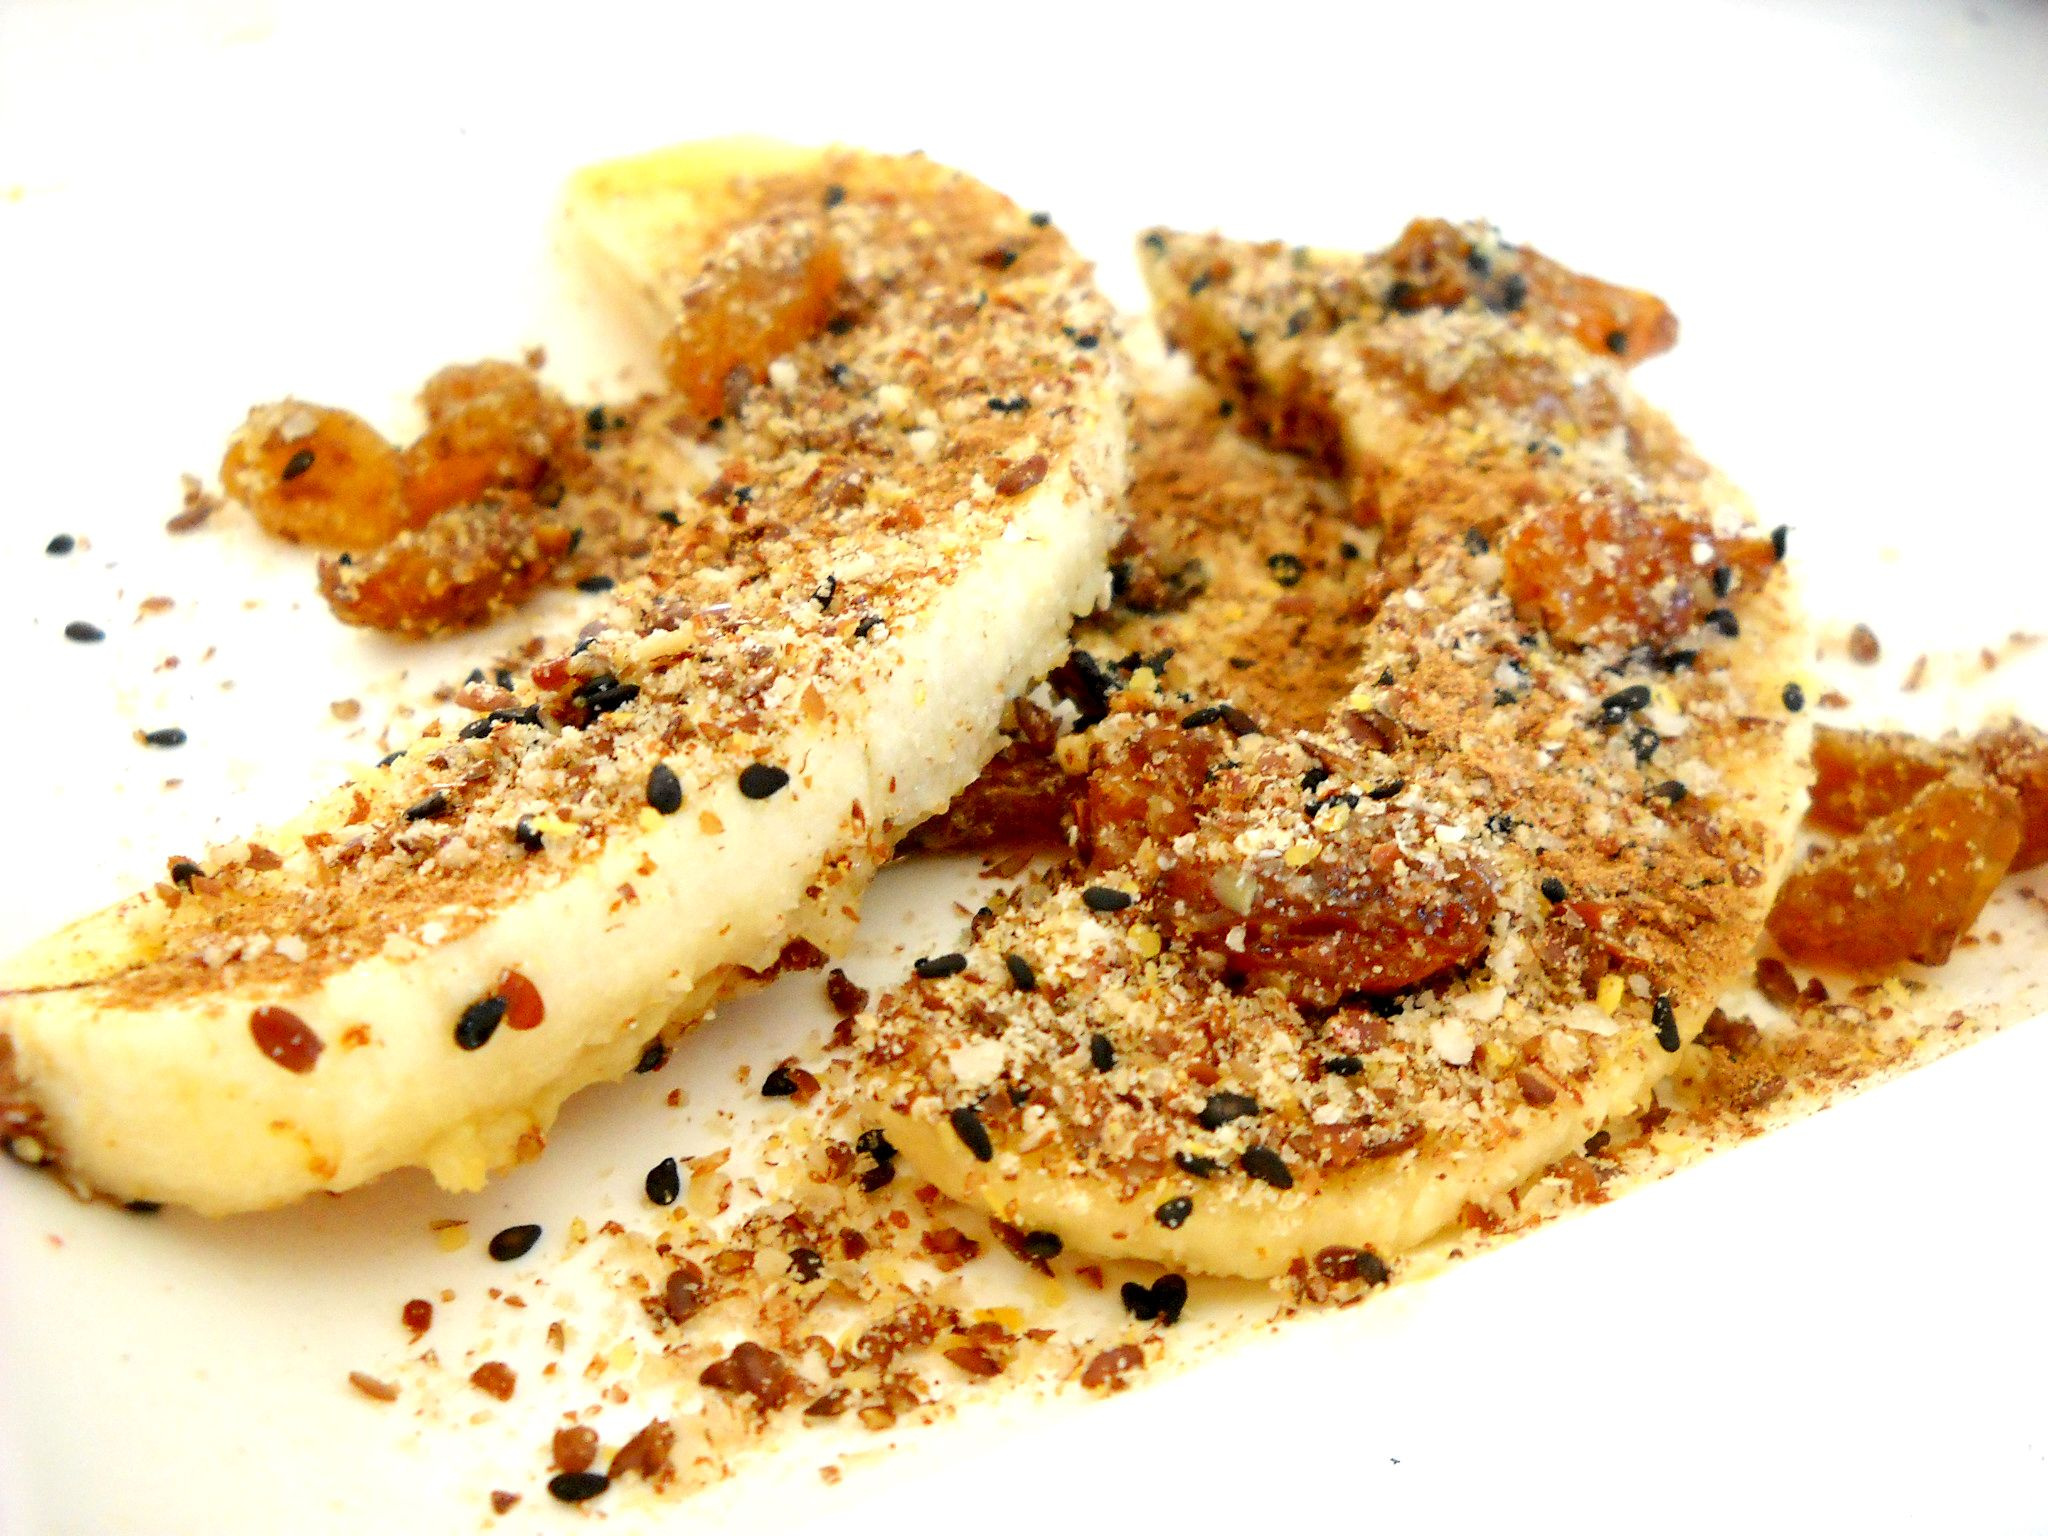 Banana and cinnamon